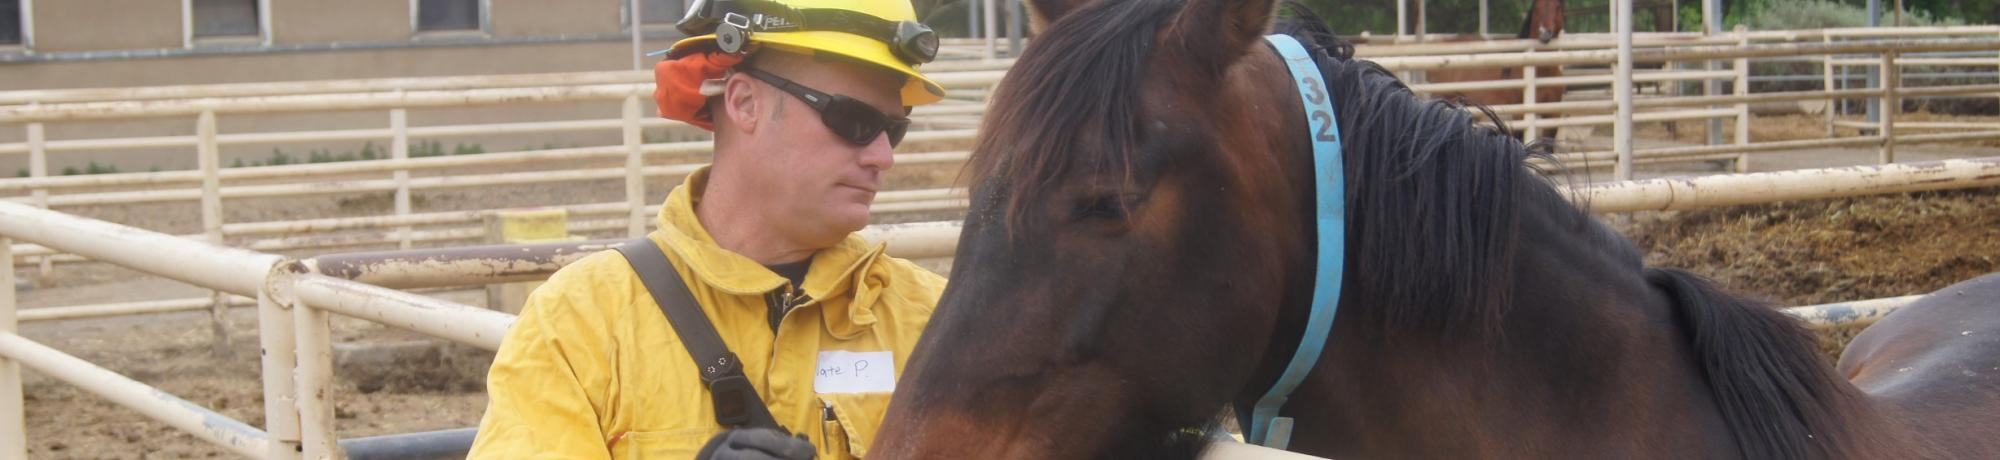 A UC Davis firefighter working to calm a horse.